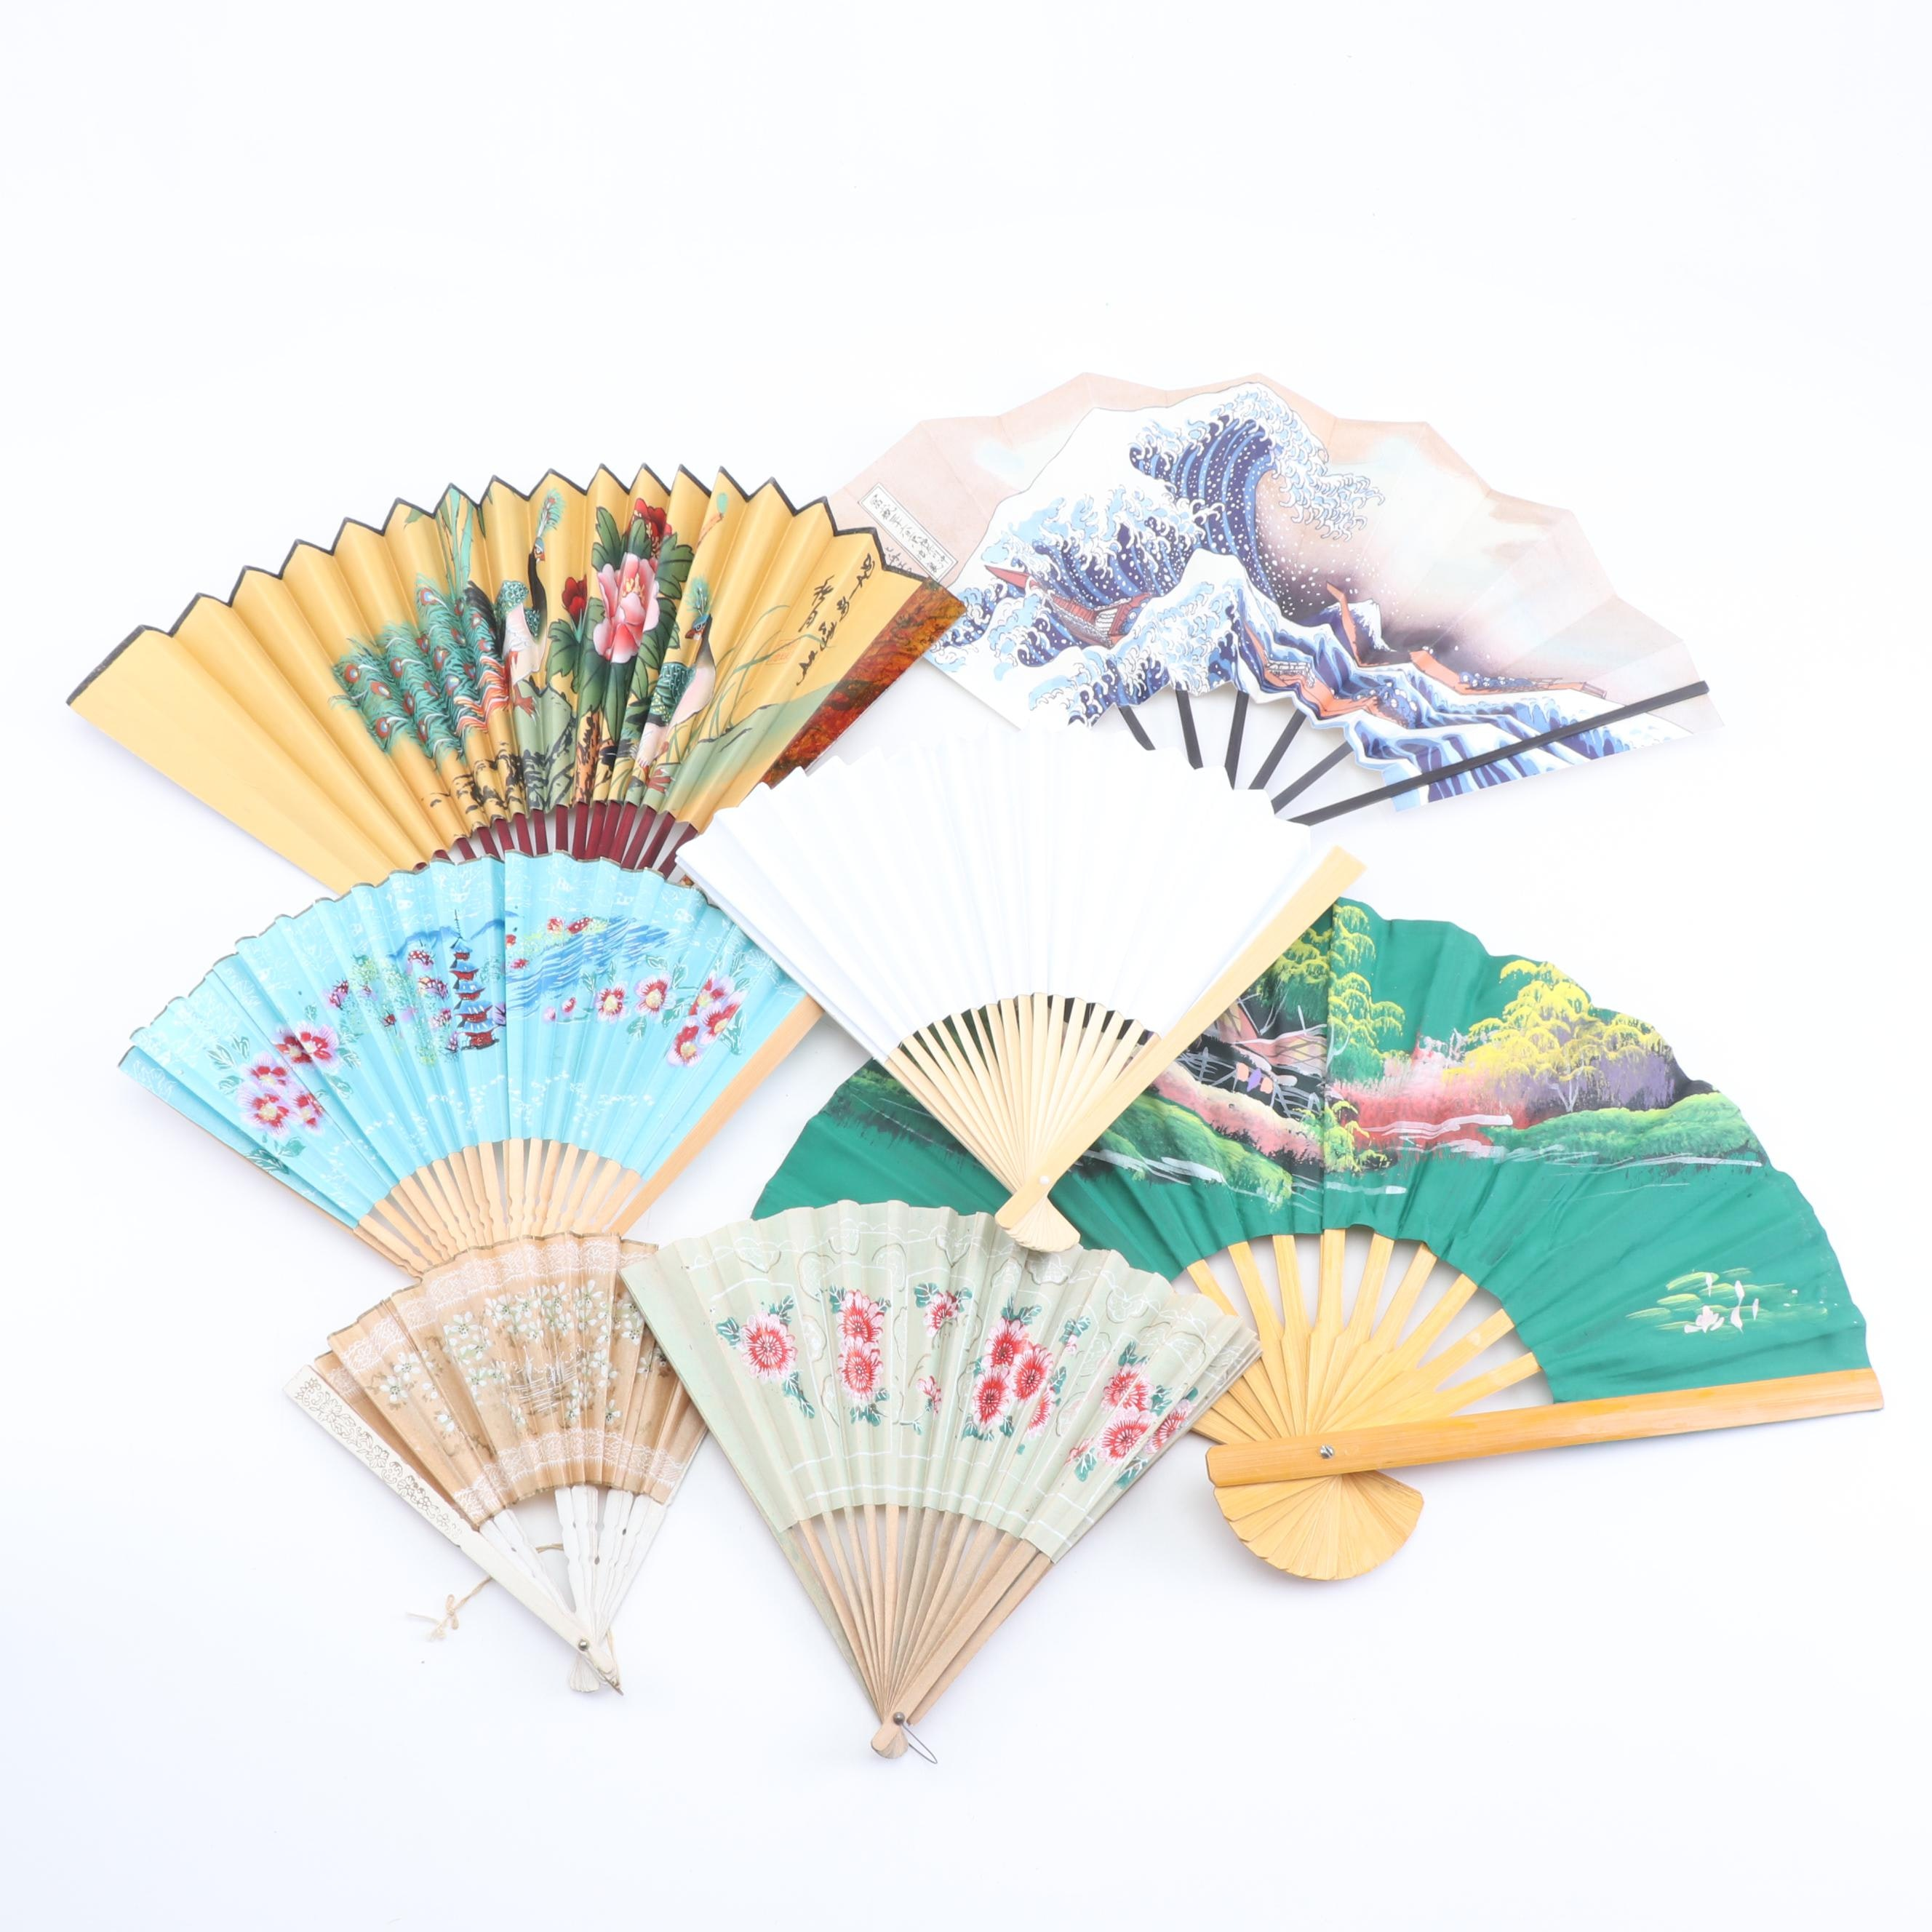 Hand-Painted Asian Style Fans